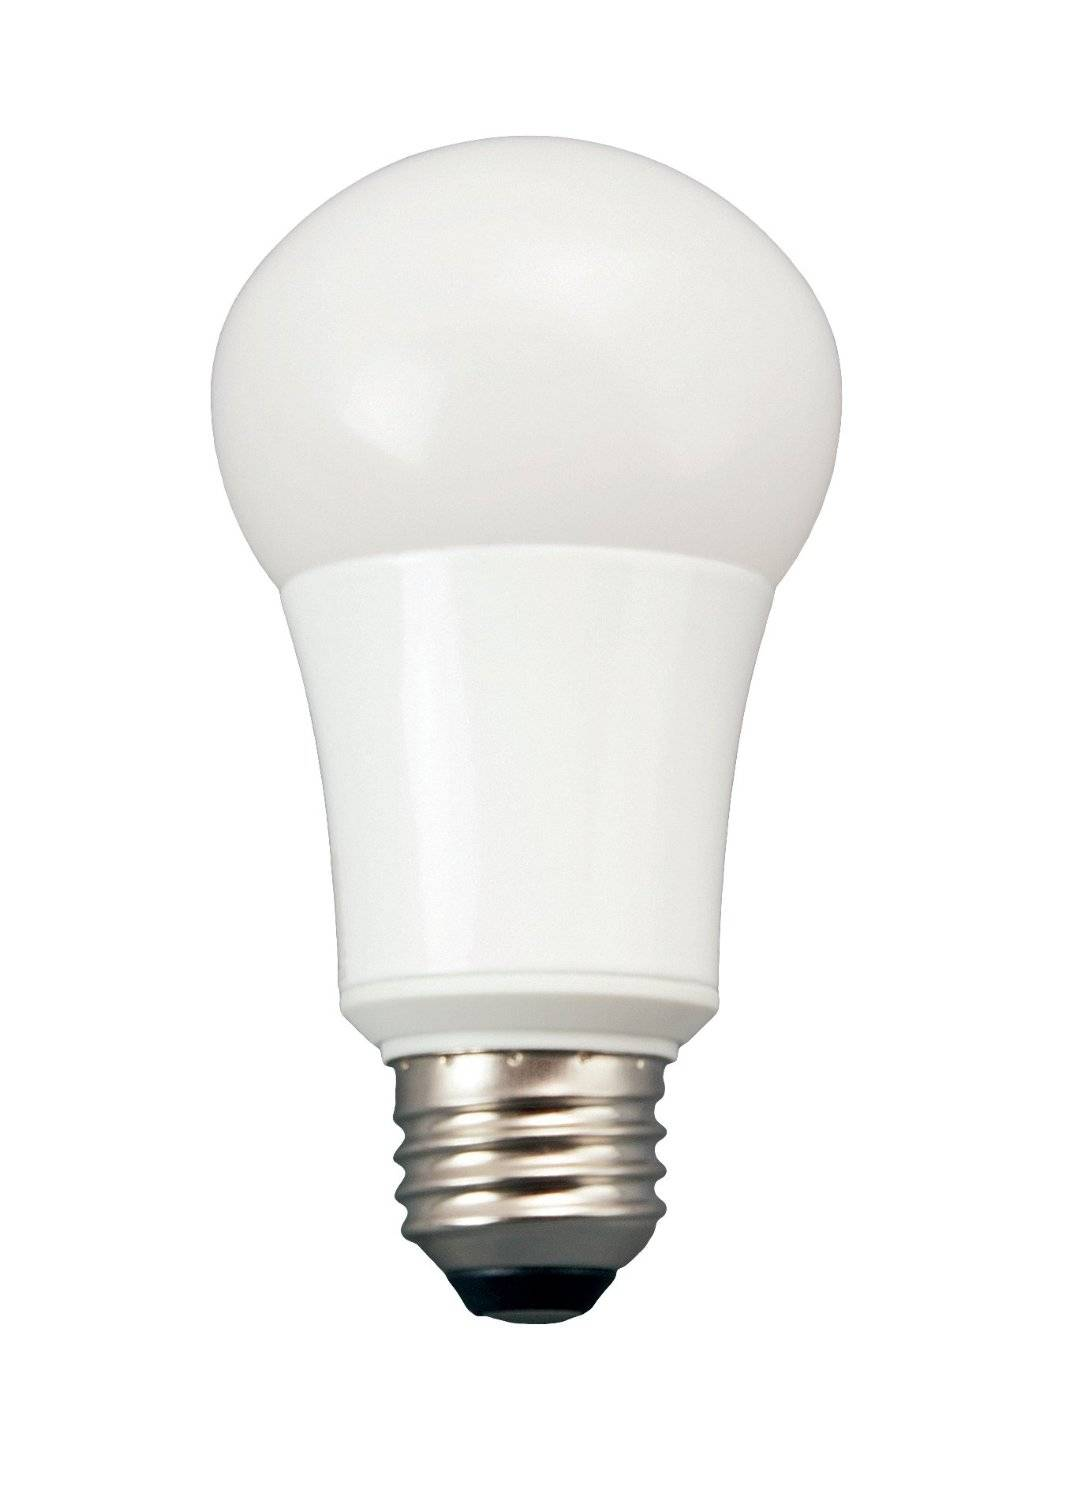 A19 Led Light Bulbs: Great Value LED 13W A19 Light Bulb, Daylight,Lighting